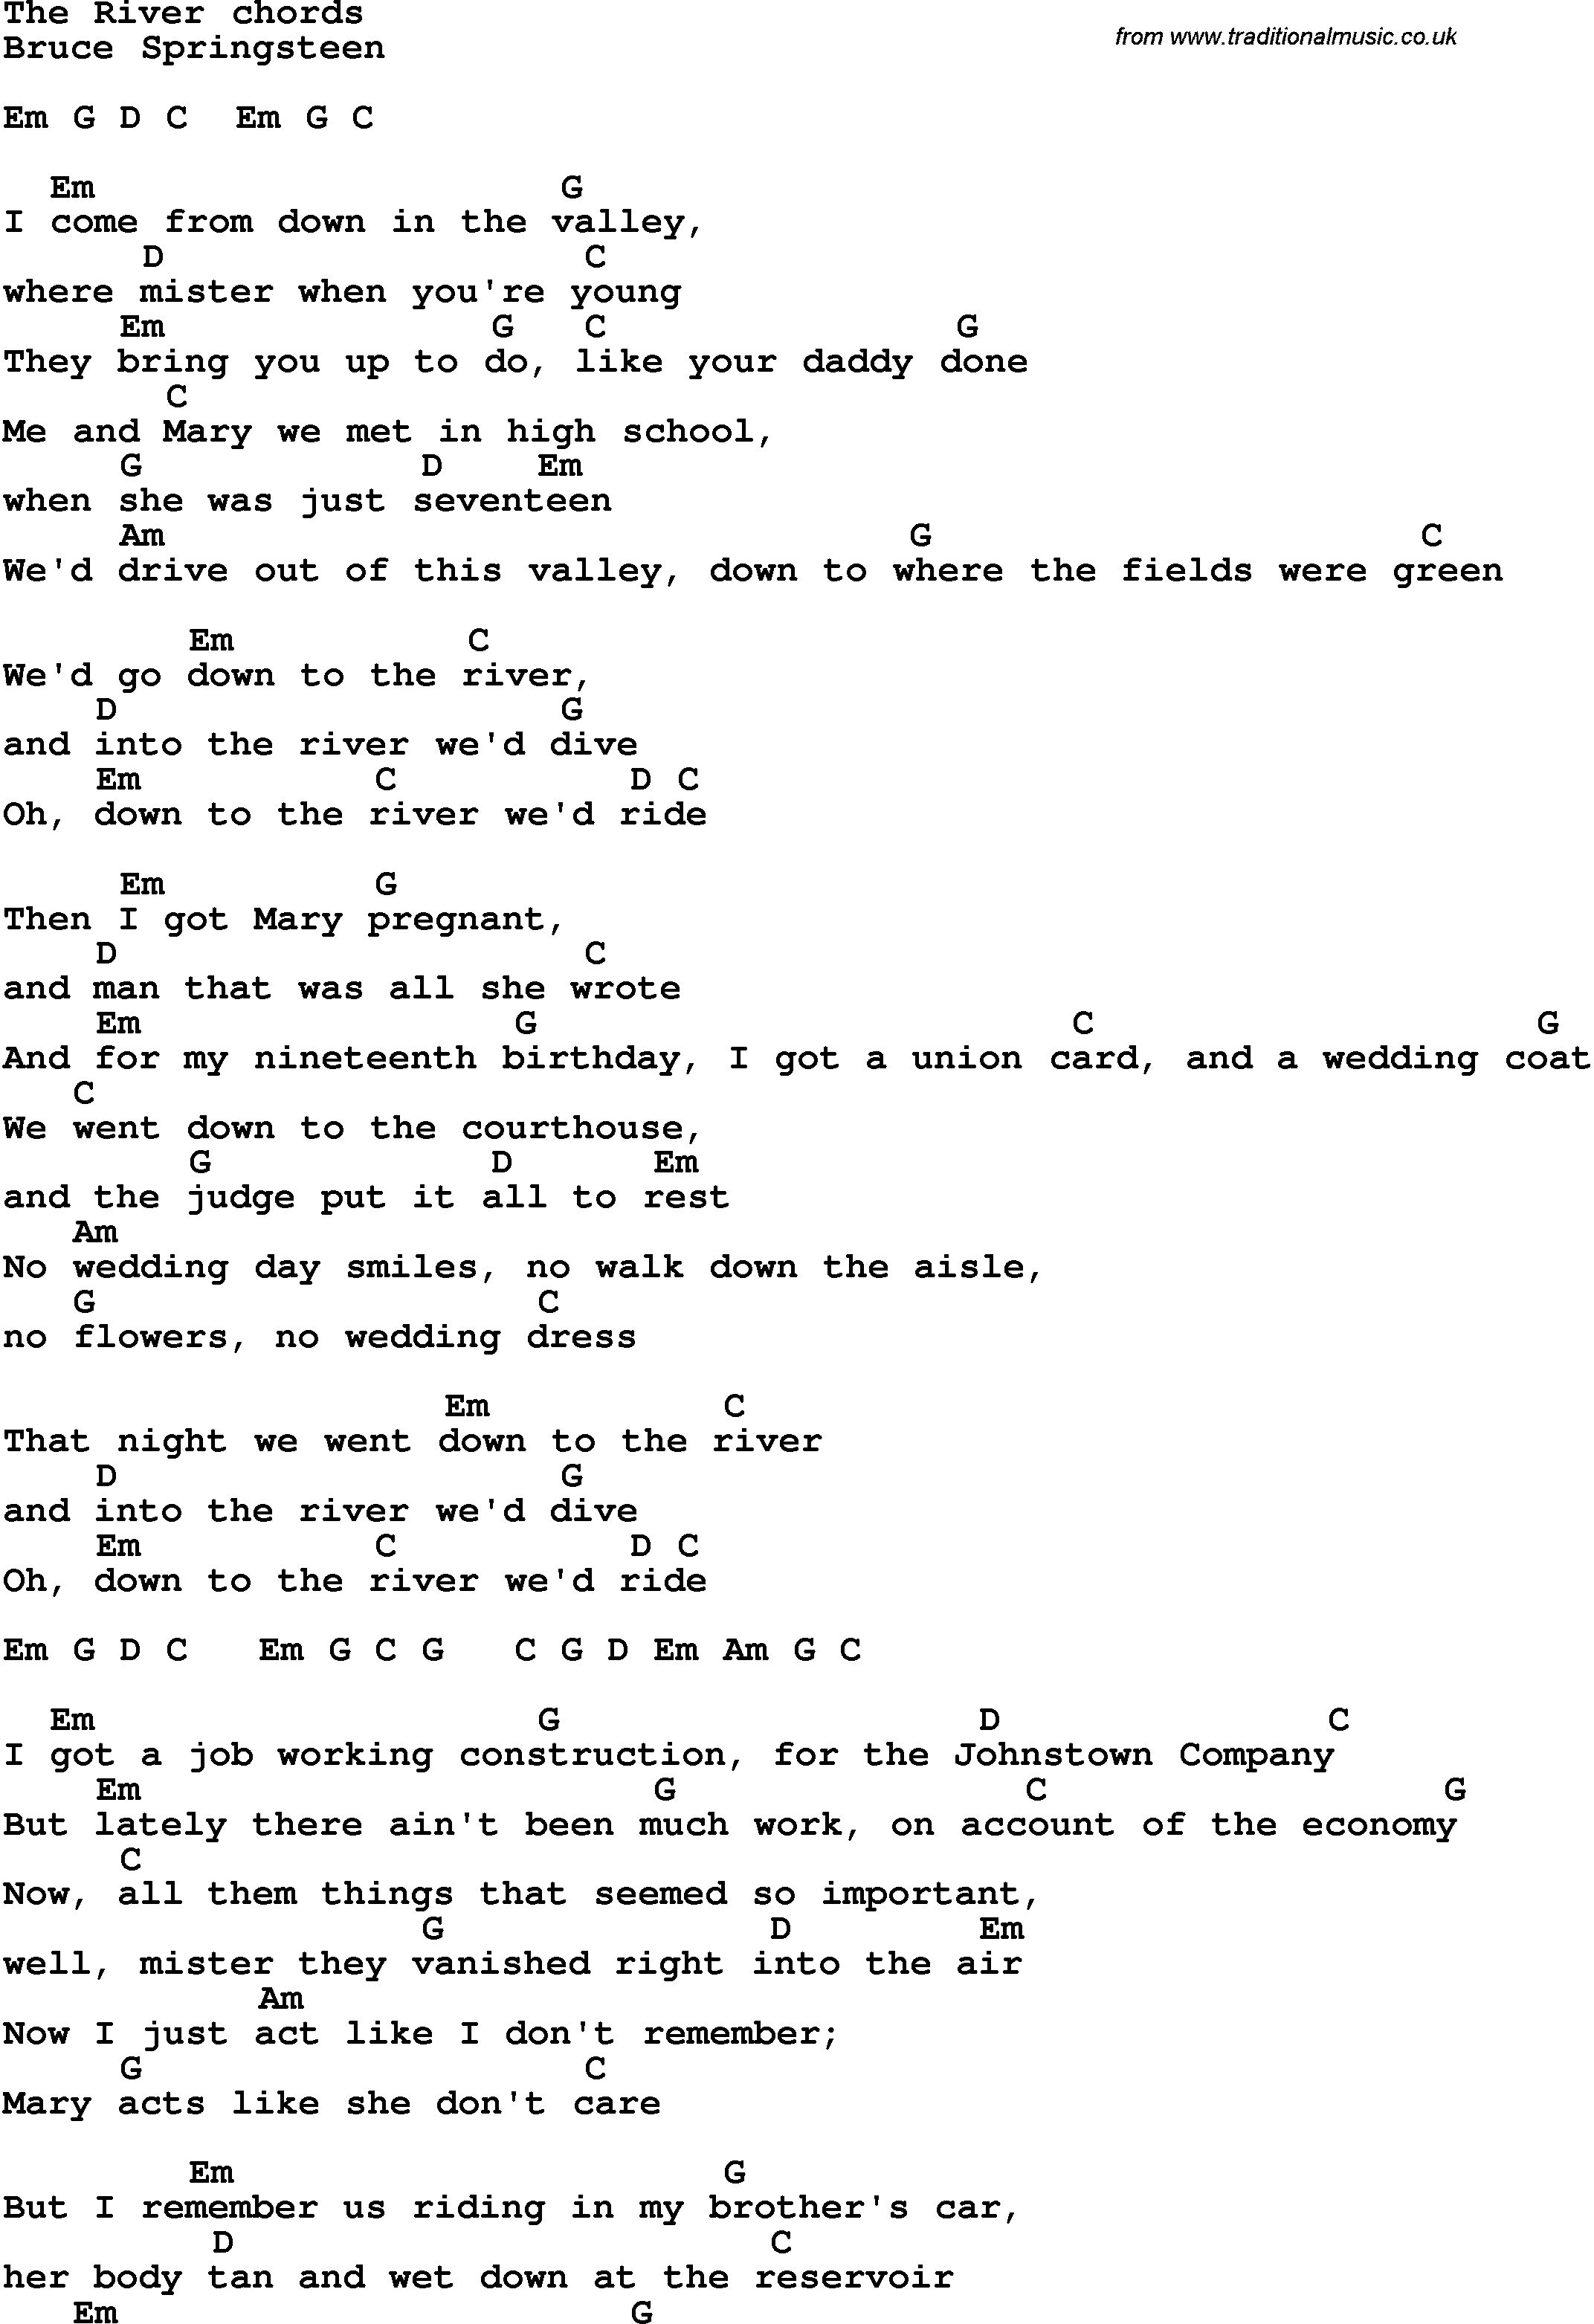 The River, Bruce Springsteen Tablature Bruce